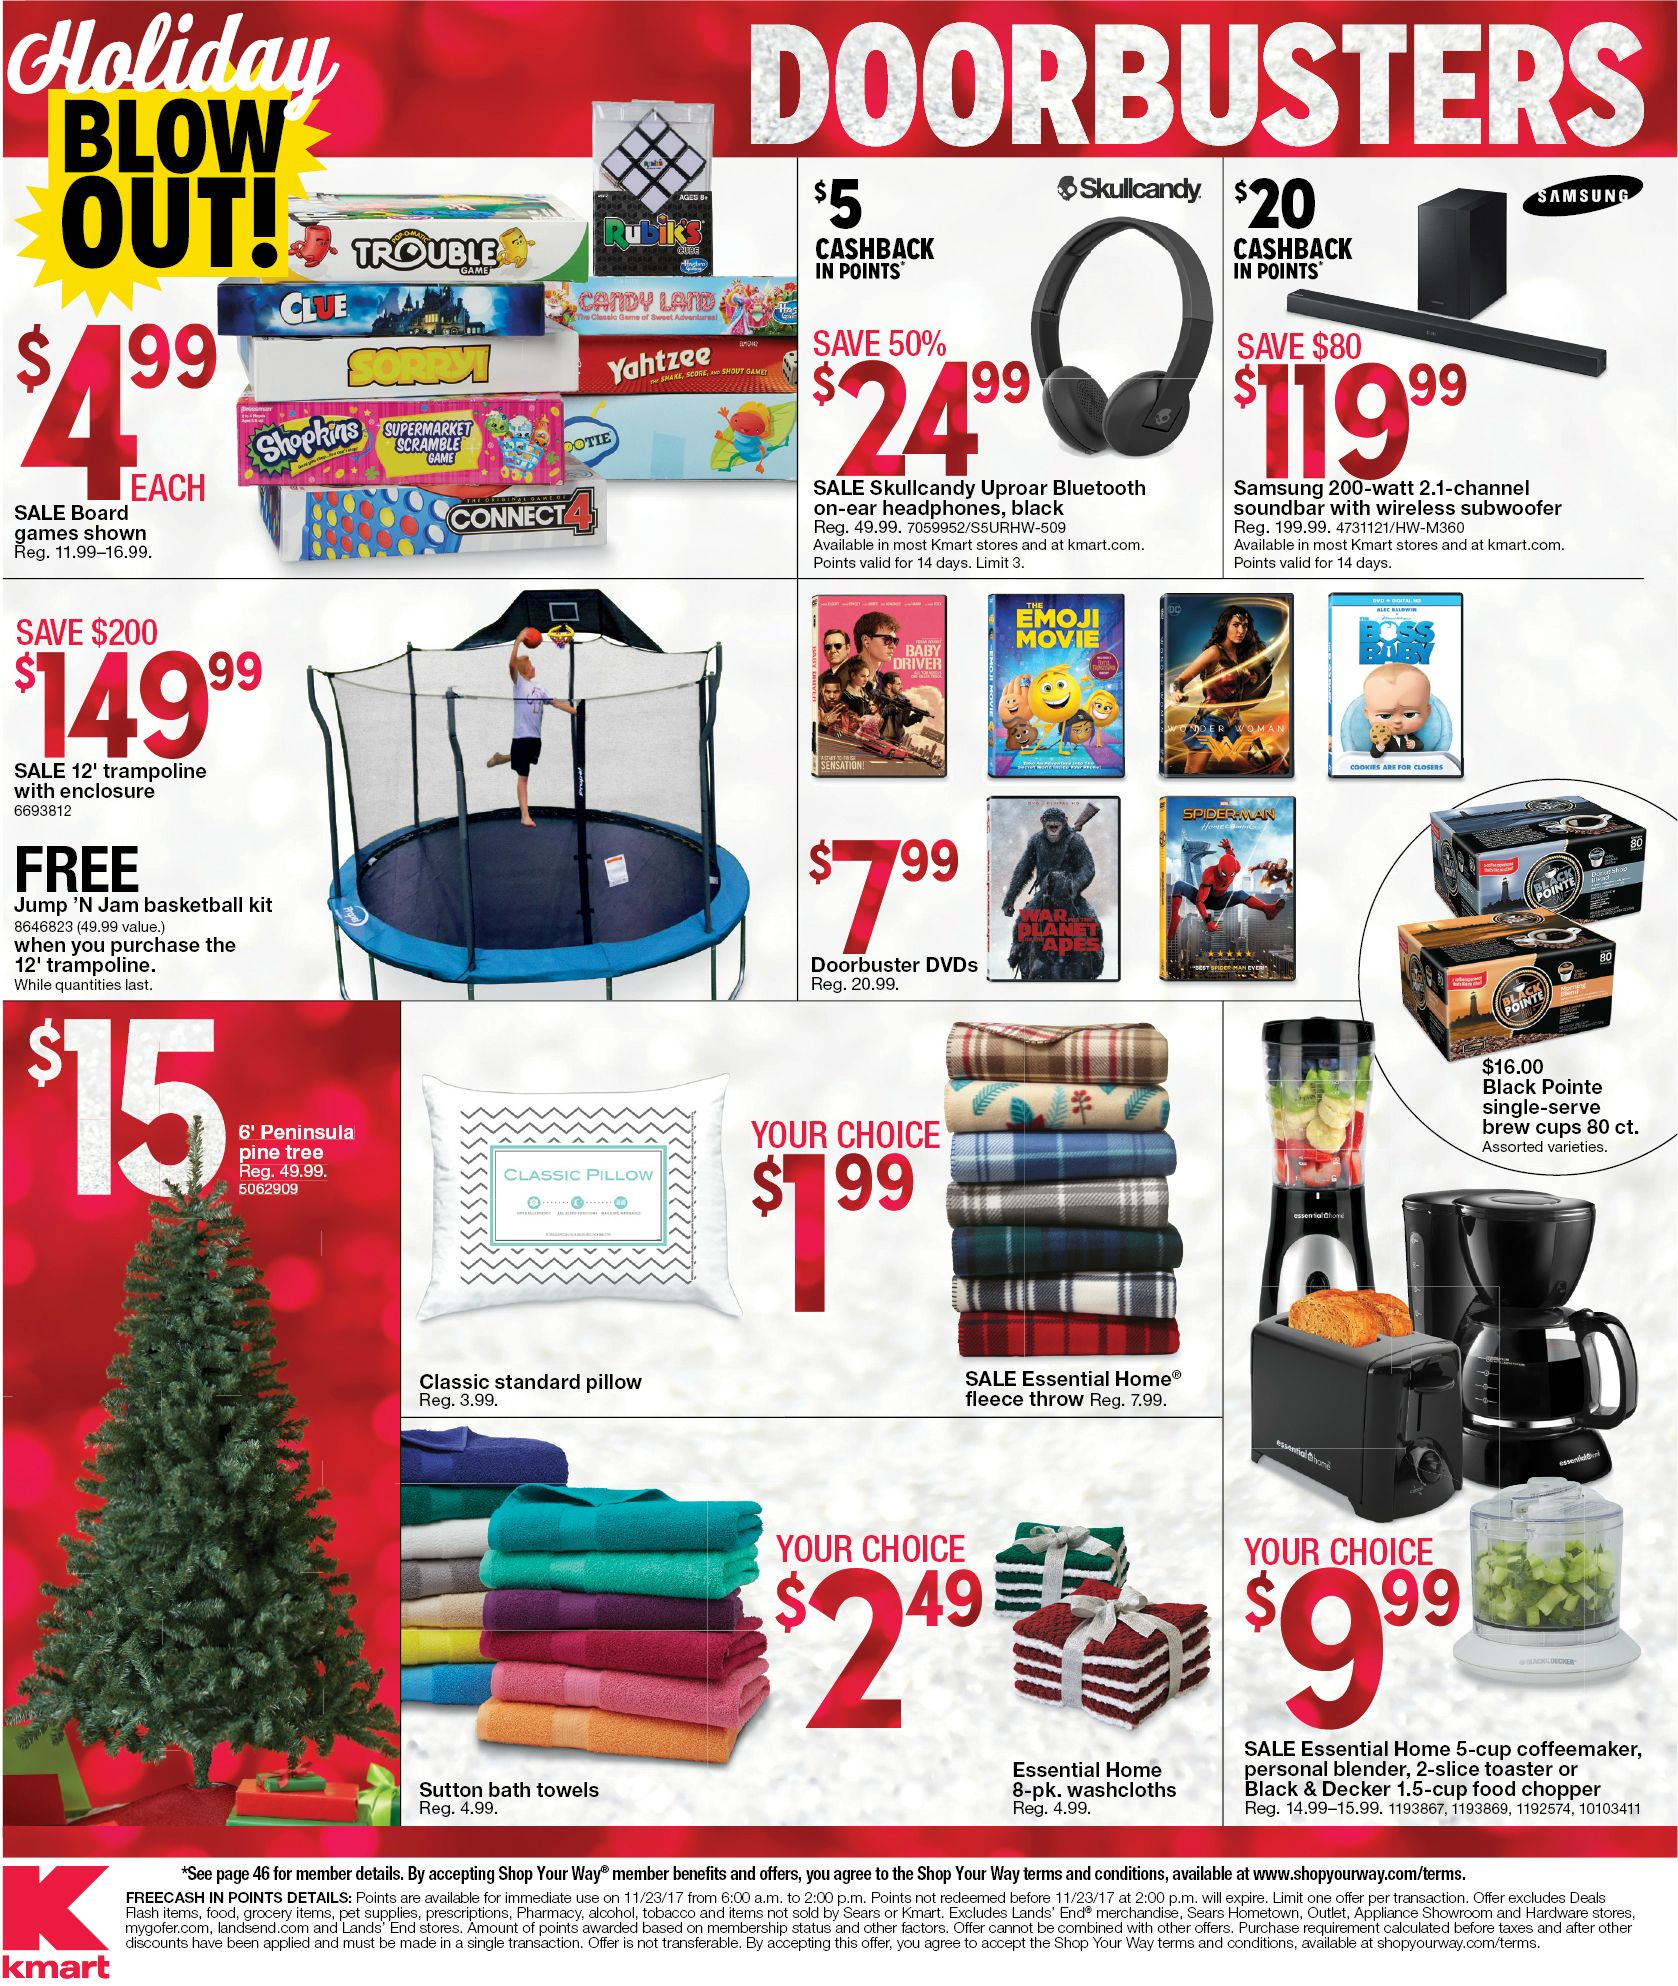 Kmart Coupons Kmart Black Friday 2017 Ads And Deals Offering Hot Black Friday